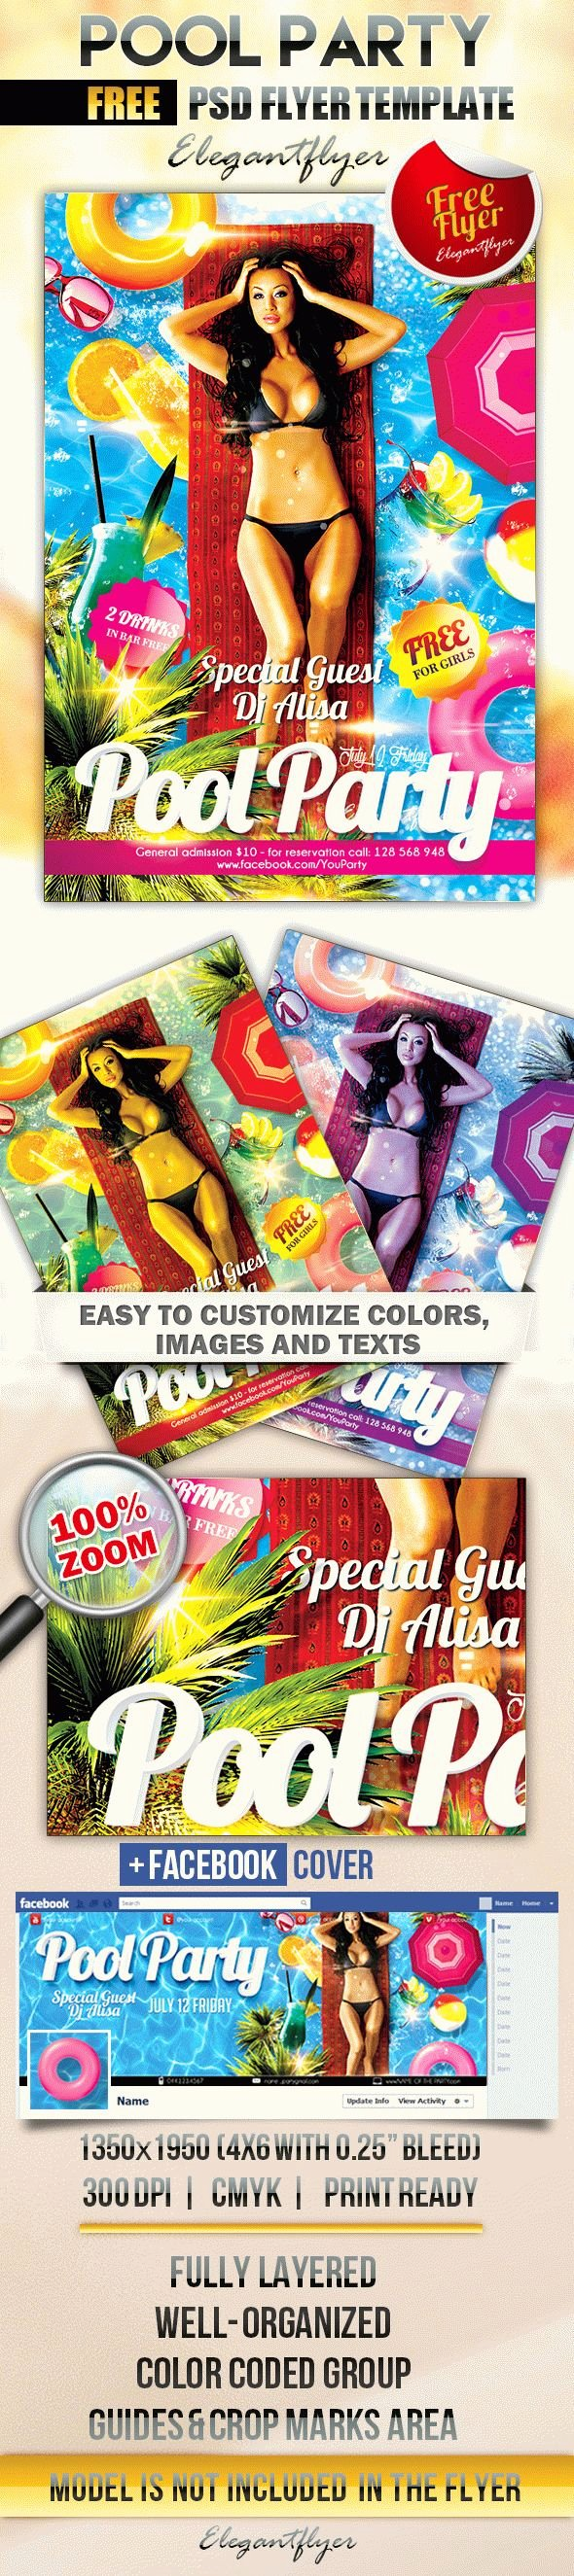 Pool Party Flyer Template Free New Pool Party 2 – Free Flyer Psd Template – by Elegantflyer